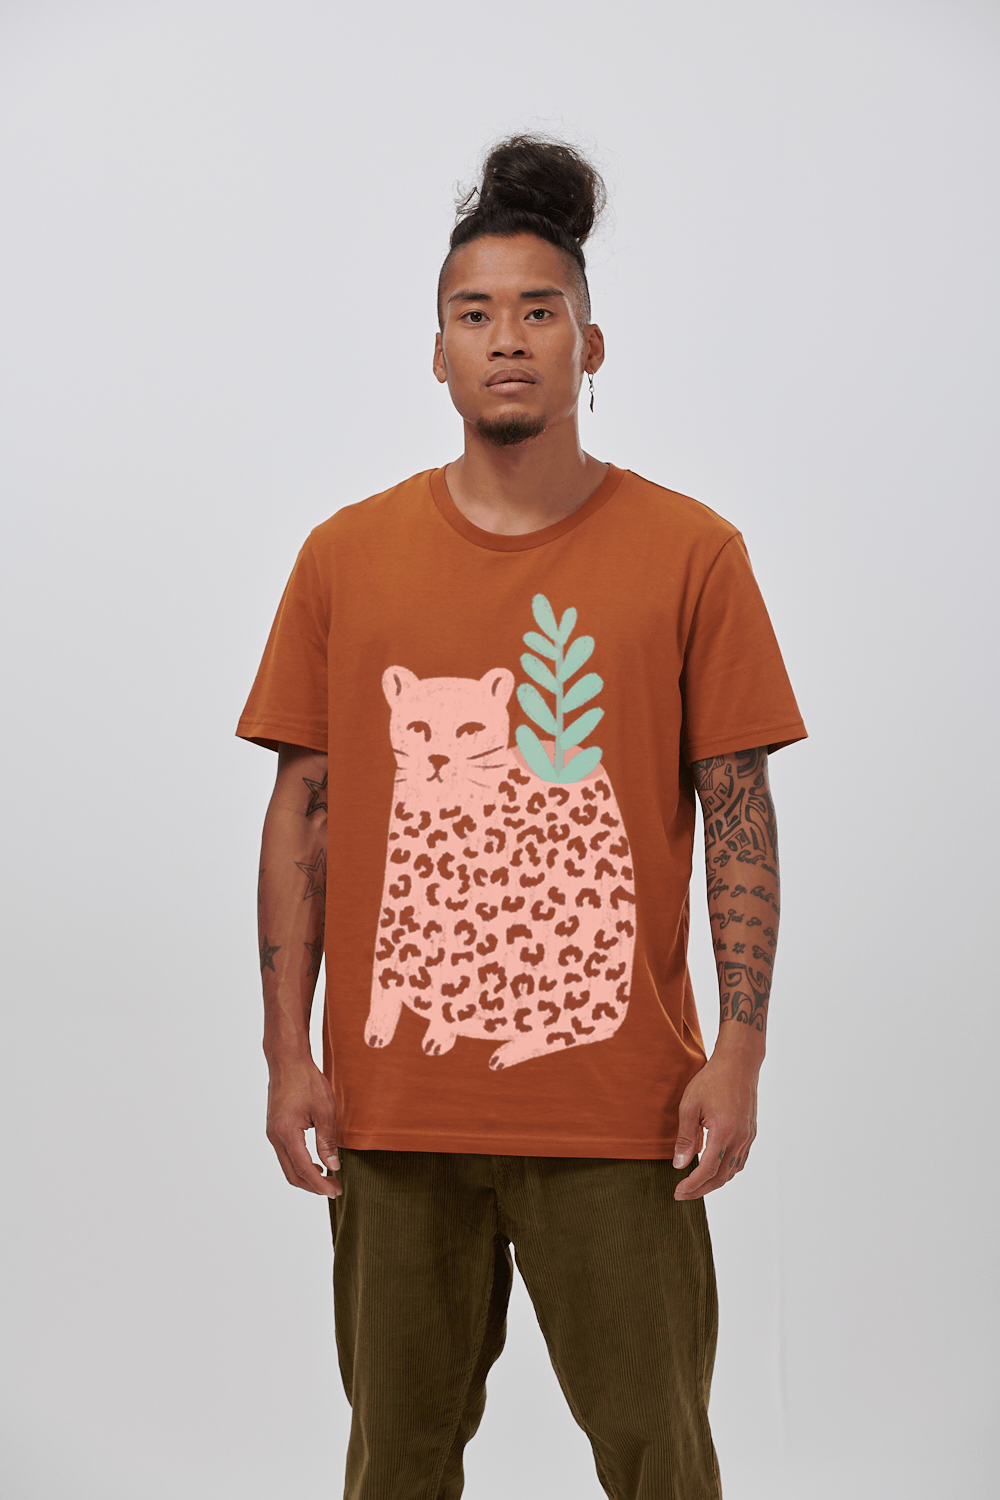 Lucy & Yak Tops 'Leo' Limited Edition Screen Printed T-Shirt By Octavia Bromell